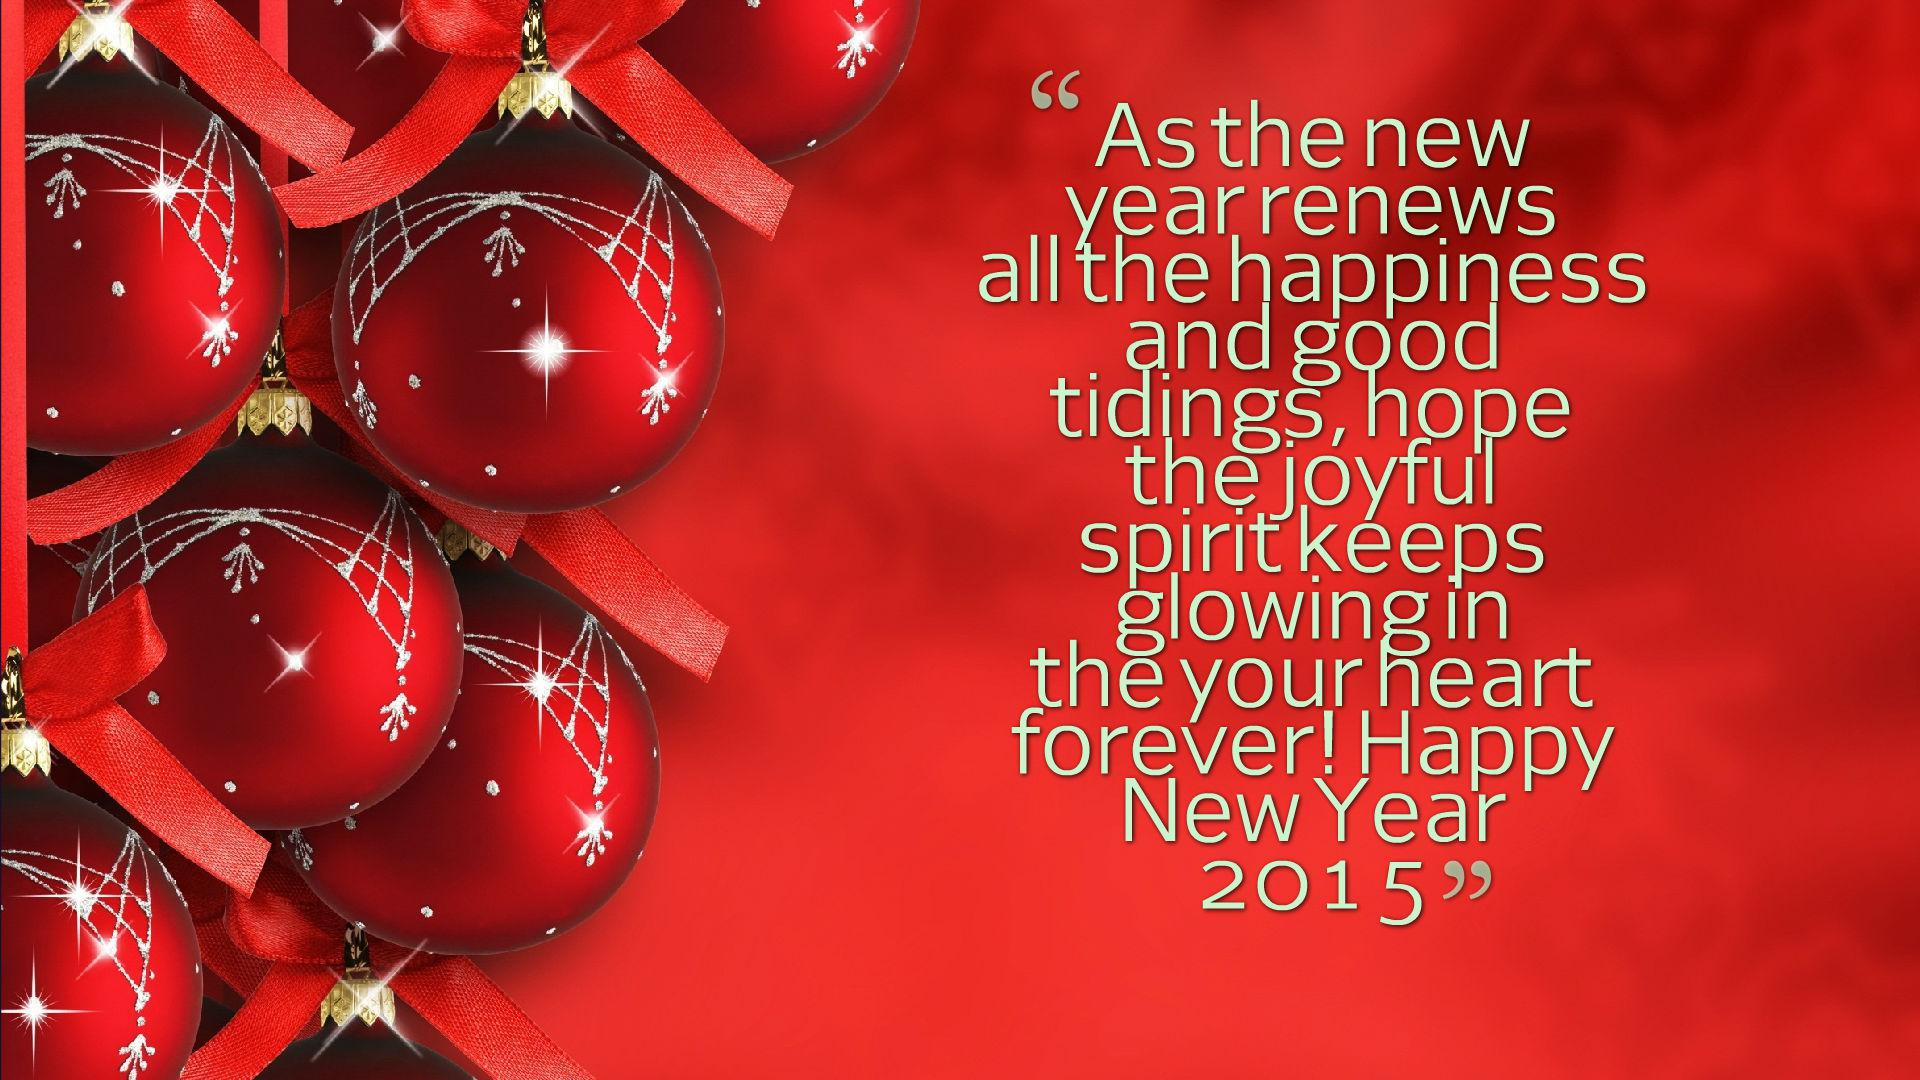 HD Happy New Year 2015 Quotes Wallpaper Download   140137 1920x1080